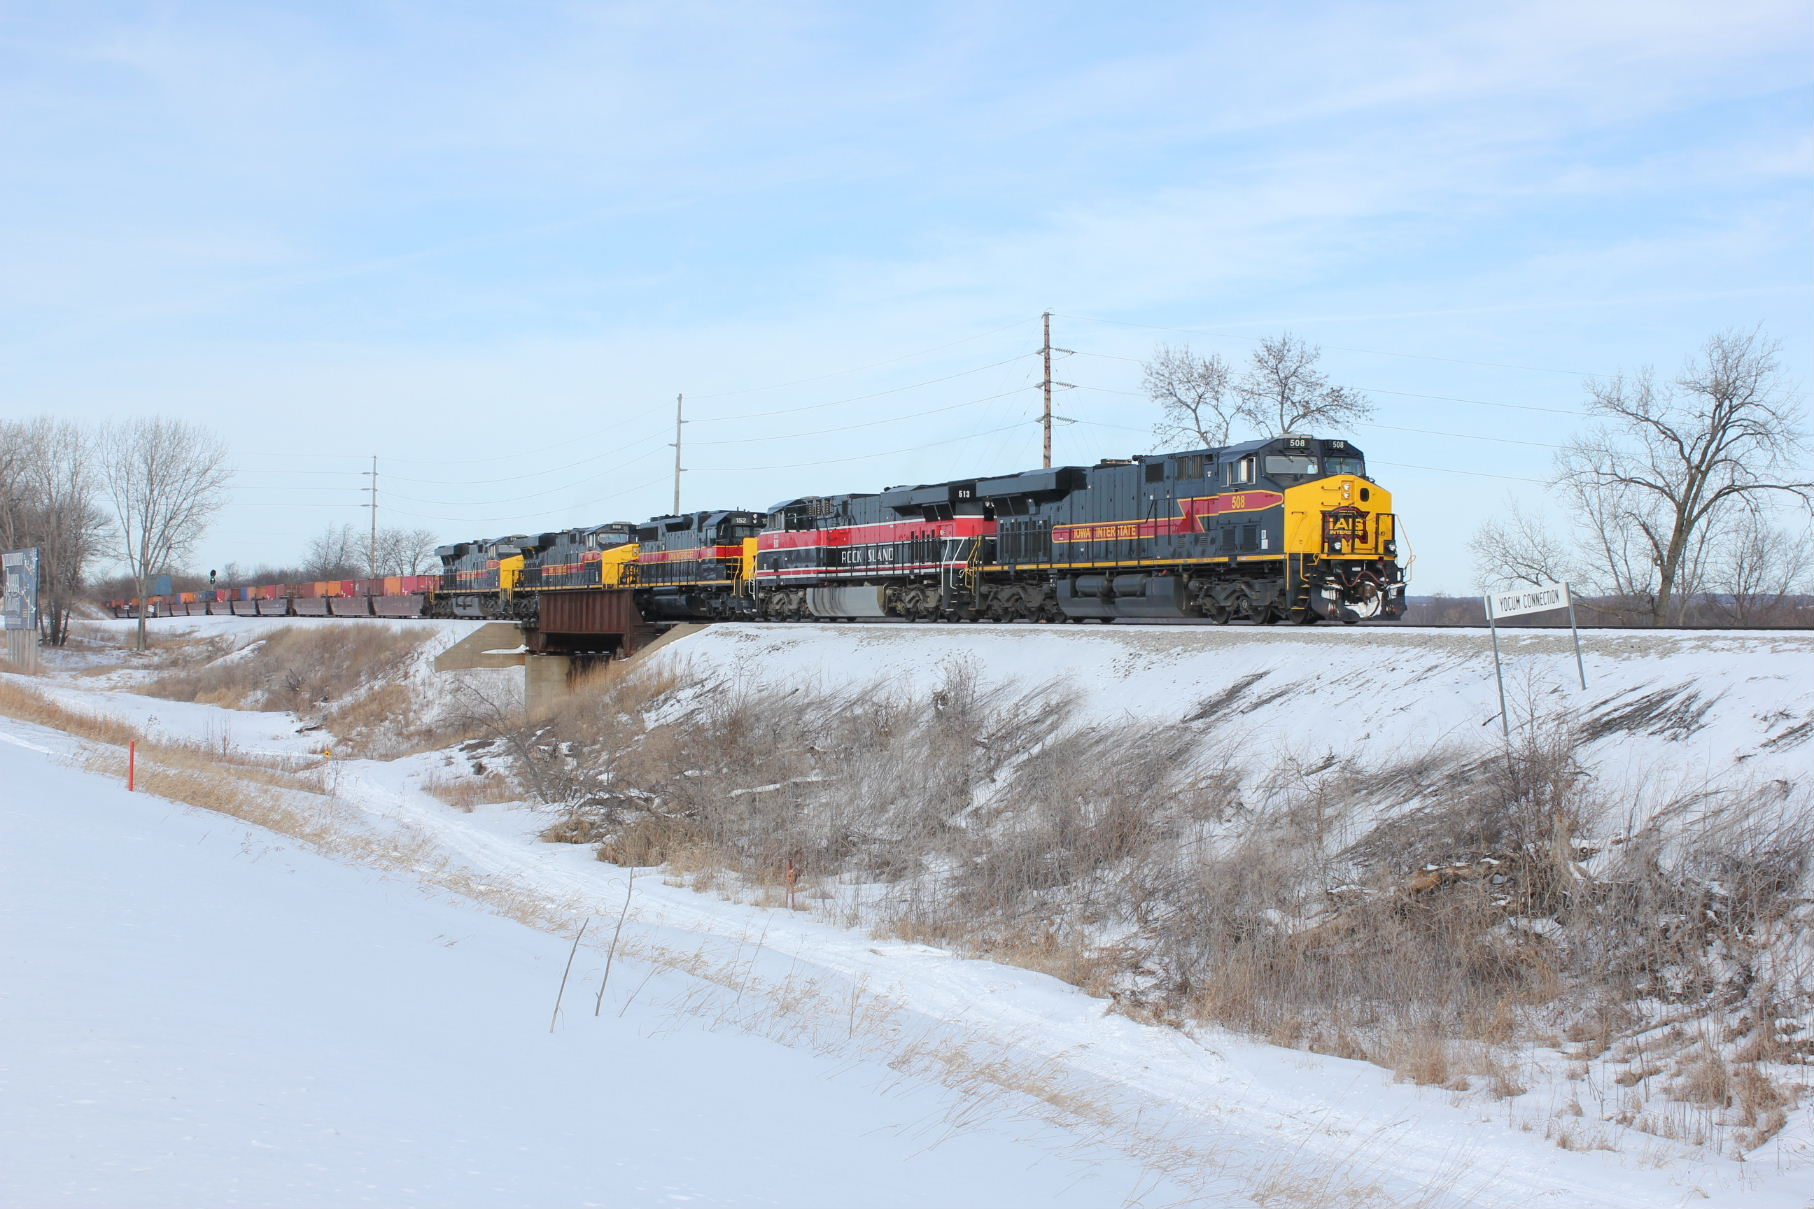 EB is just leaving South Amana, Feb. 19, 2014.